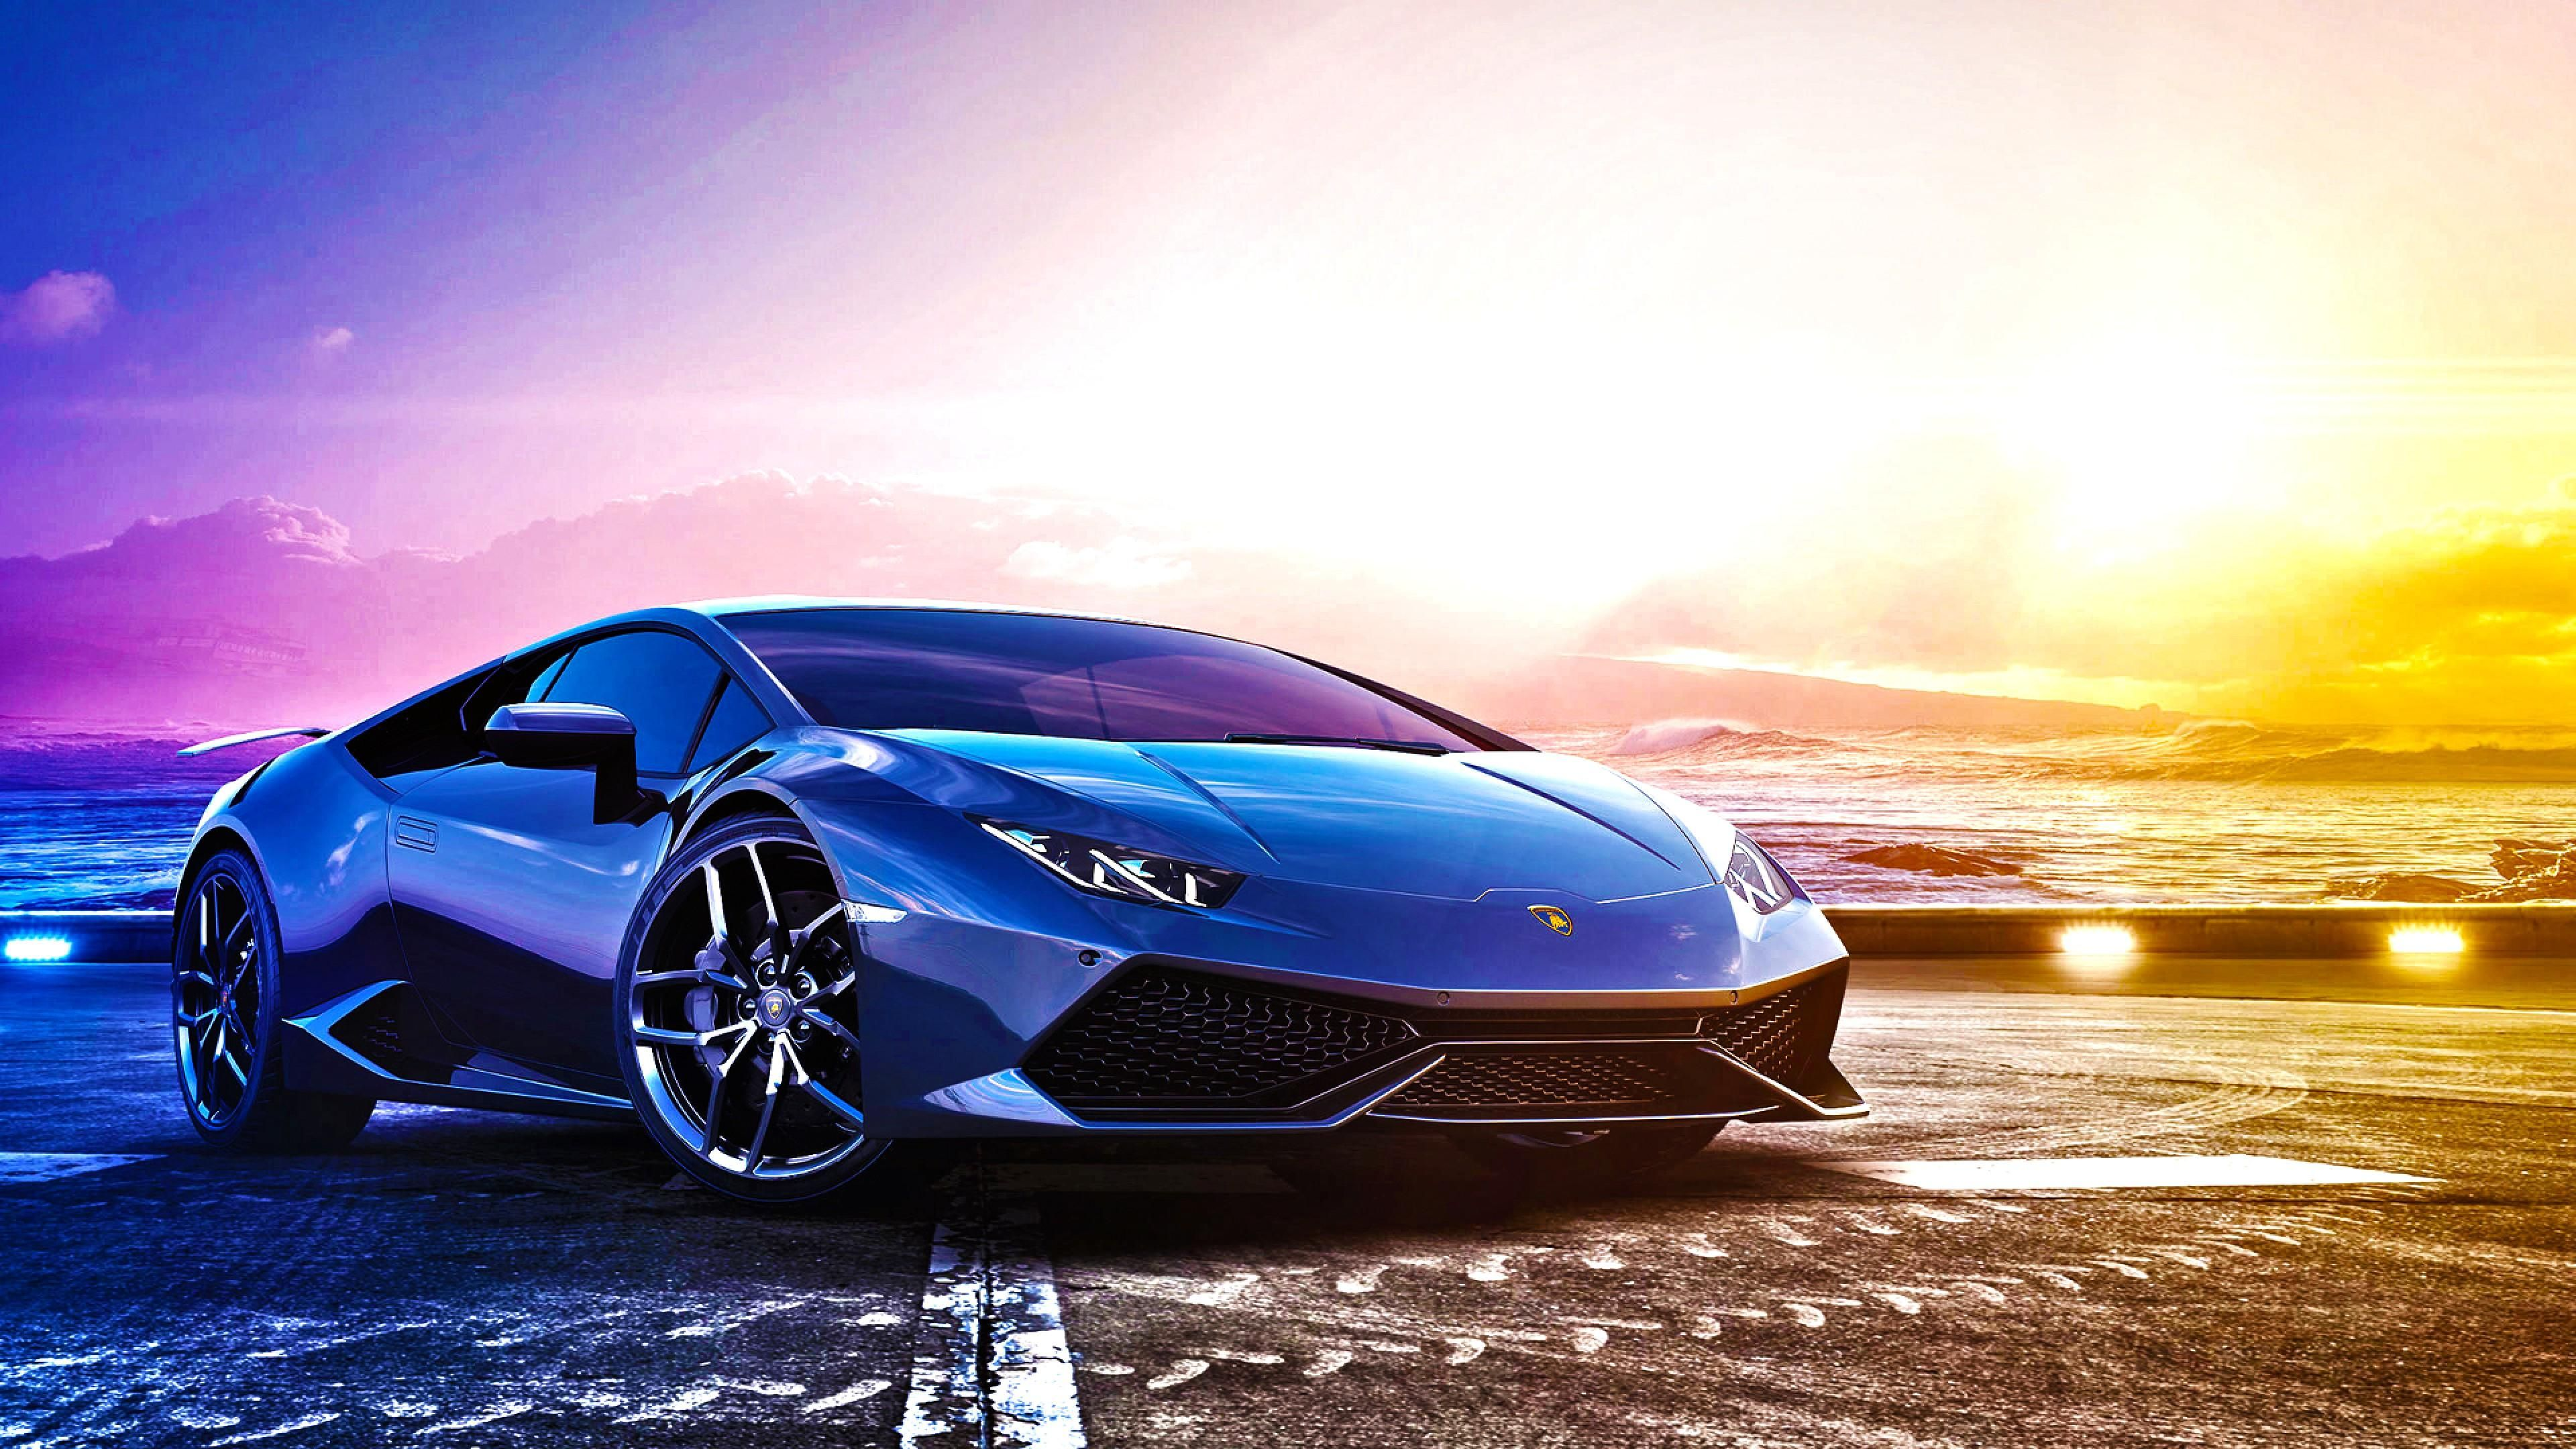 Wallpaper 4k Blue Lamborghini Aventador 4k Wallpapers Cars Wallpapers Hd Wallpapers Lamborghini Aventador Wallpapers Lamborghini Wallpapers Lamborghini Aventador Otomobil Araba